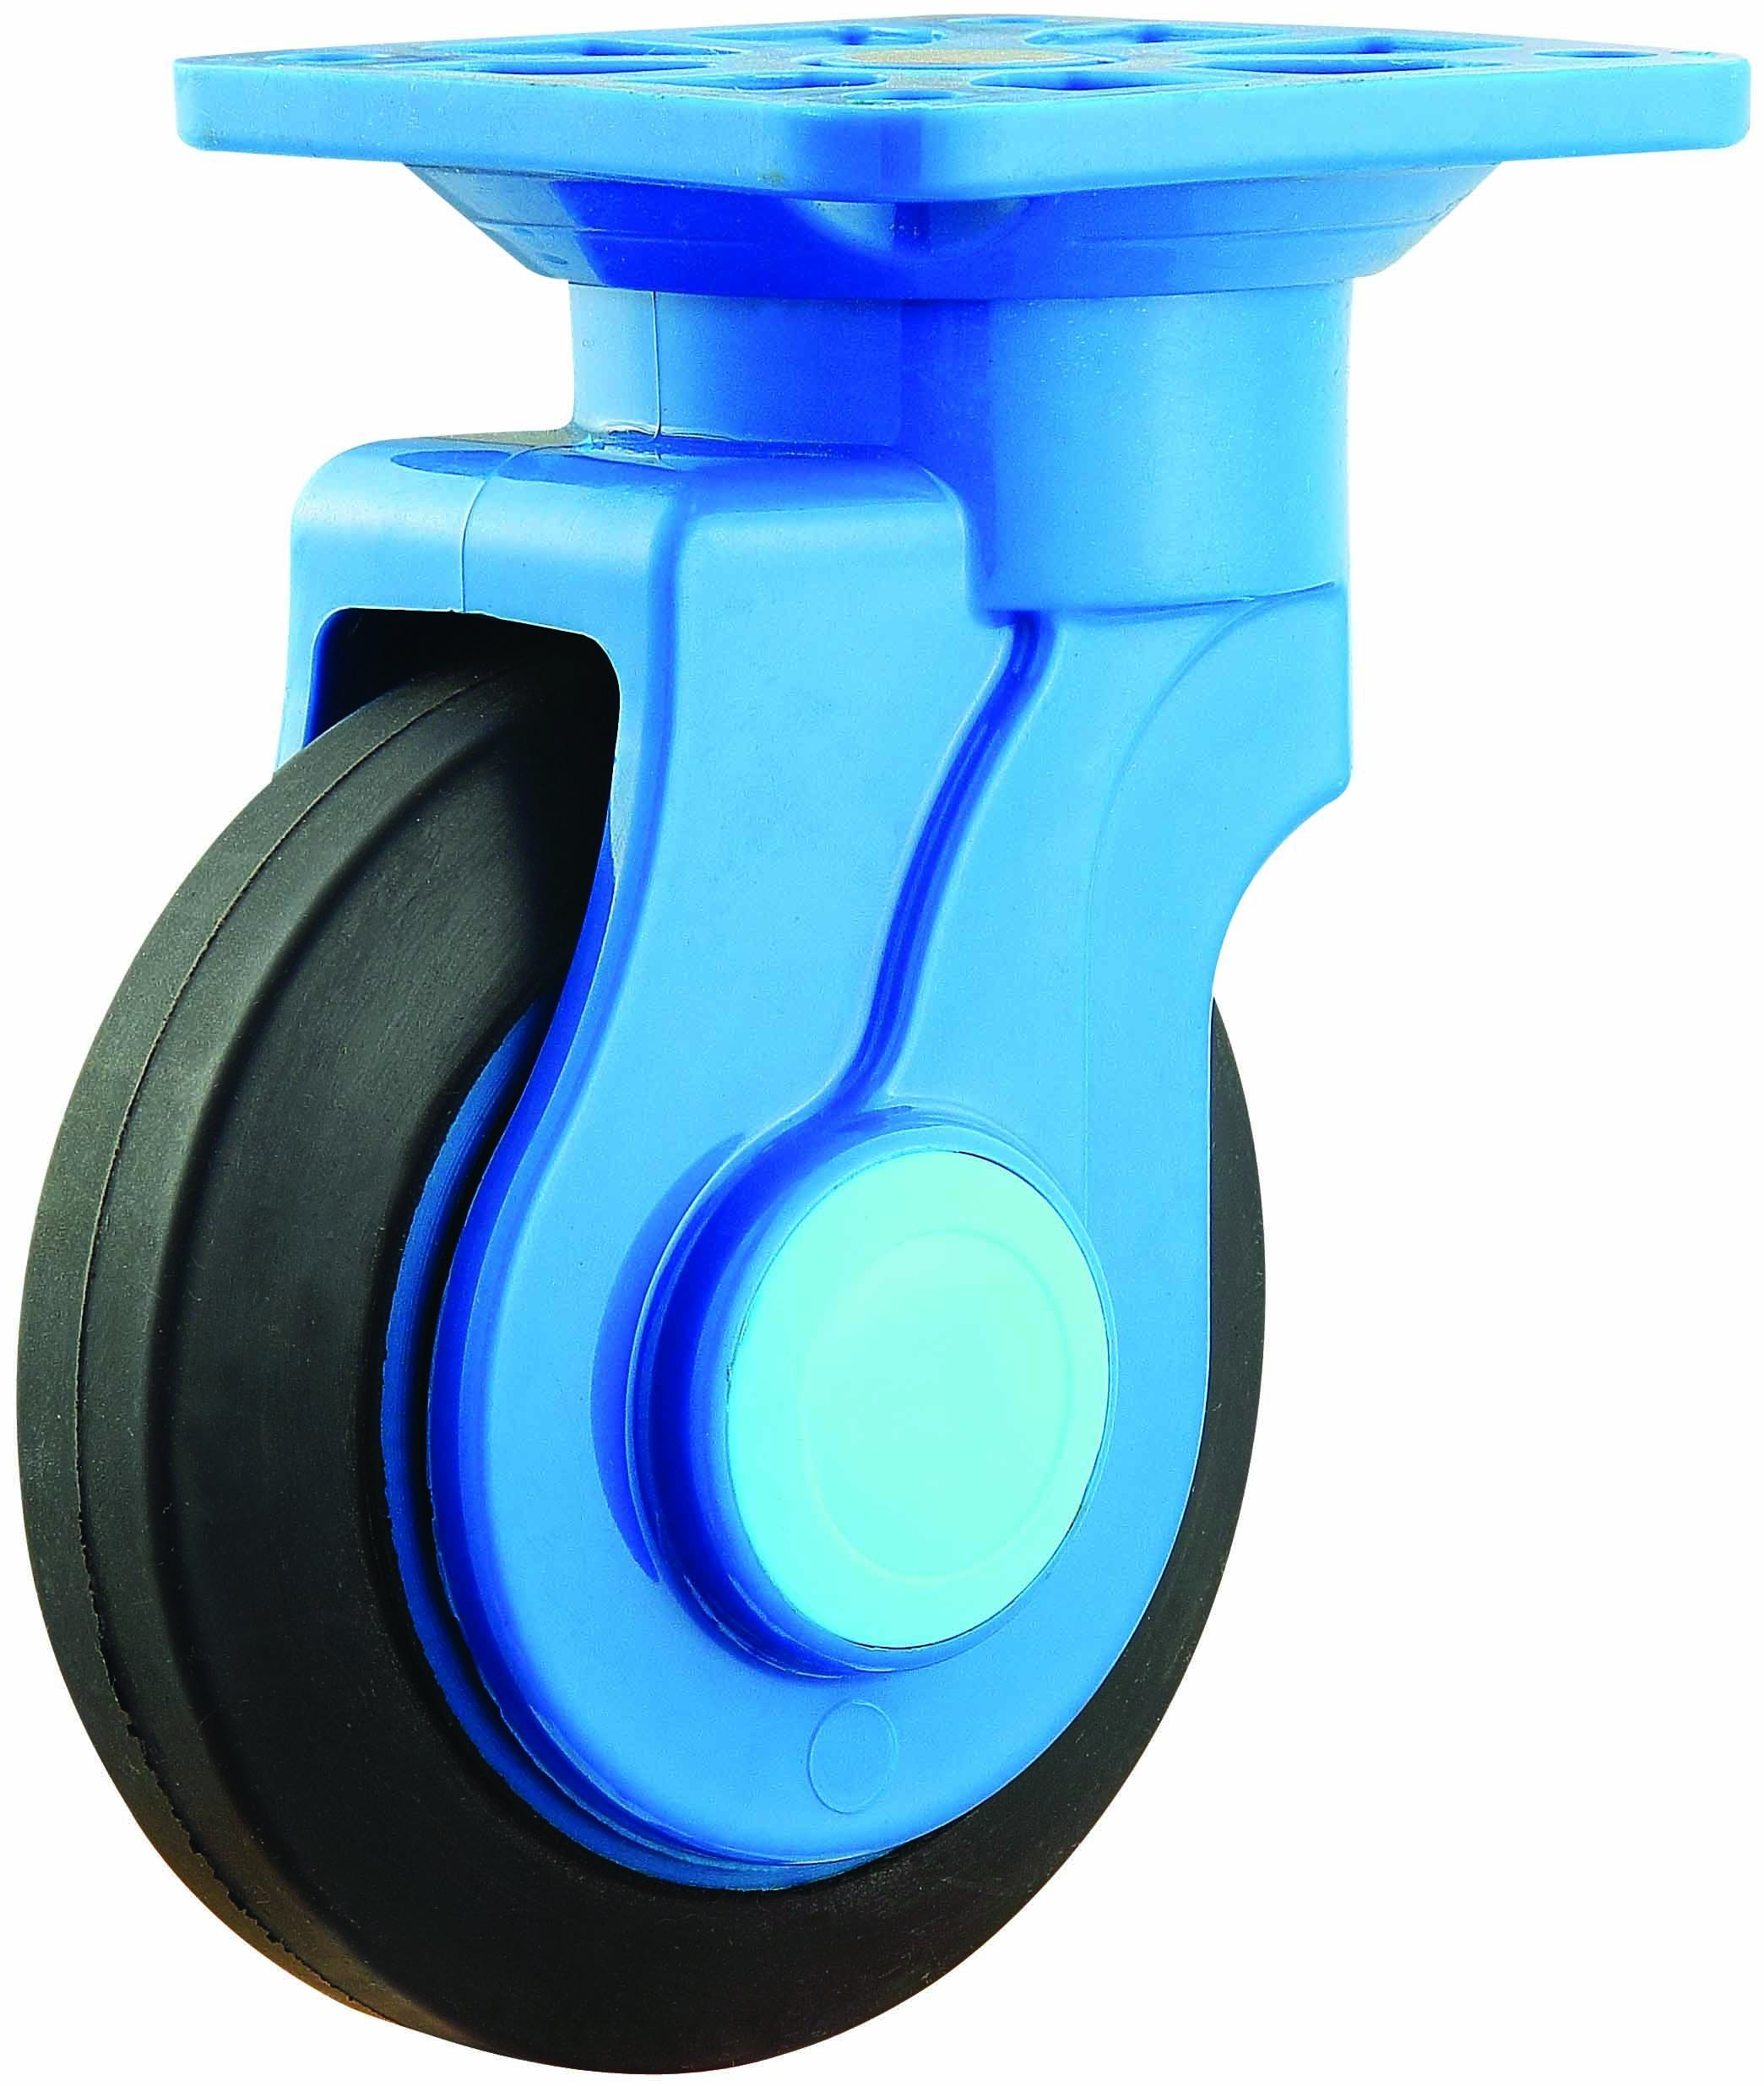 4/5 Inch Er Noiseless Trolley Castor with Nylon Bracket Elastic Rubber Industrial Caster Wheel